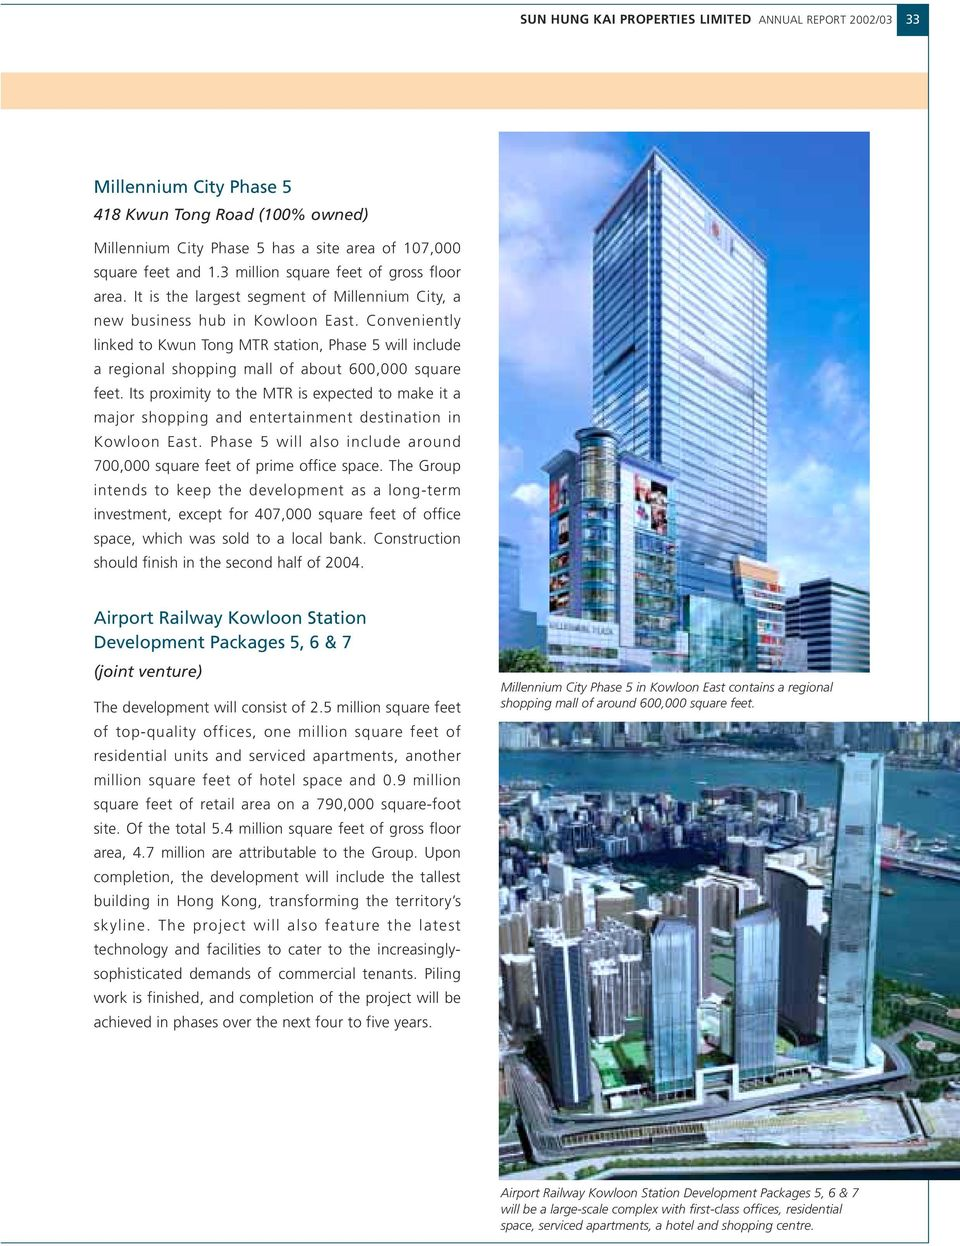 Conveniently linked to Kwun Tong MTR station, Phase 5 will include a regional shopping mall of about 600,000 square feet.